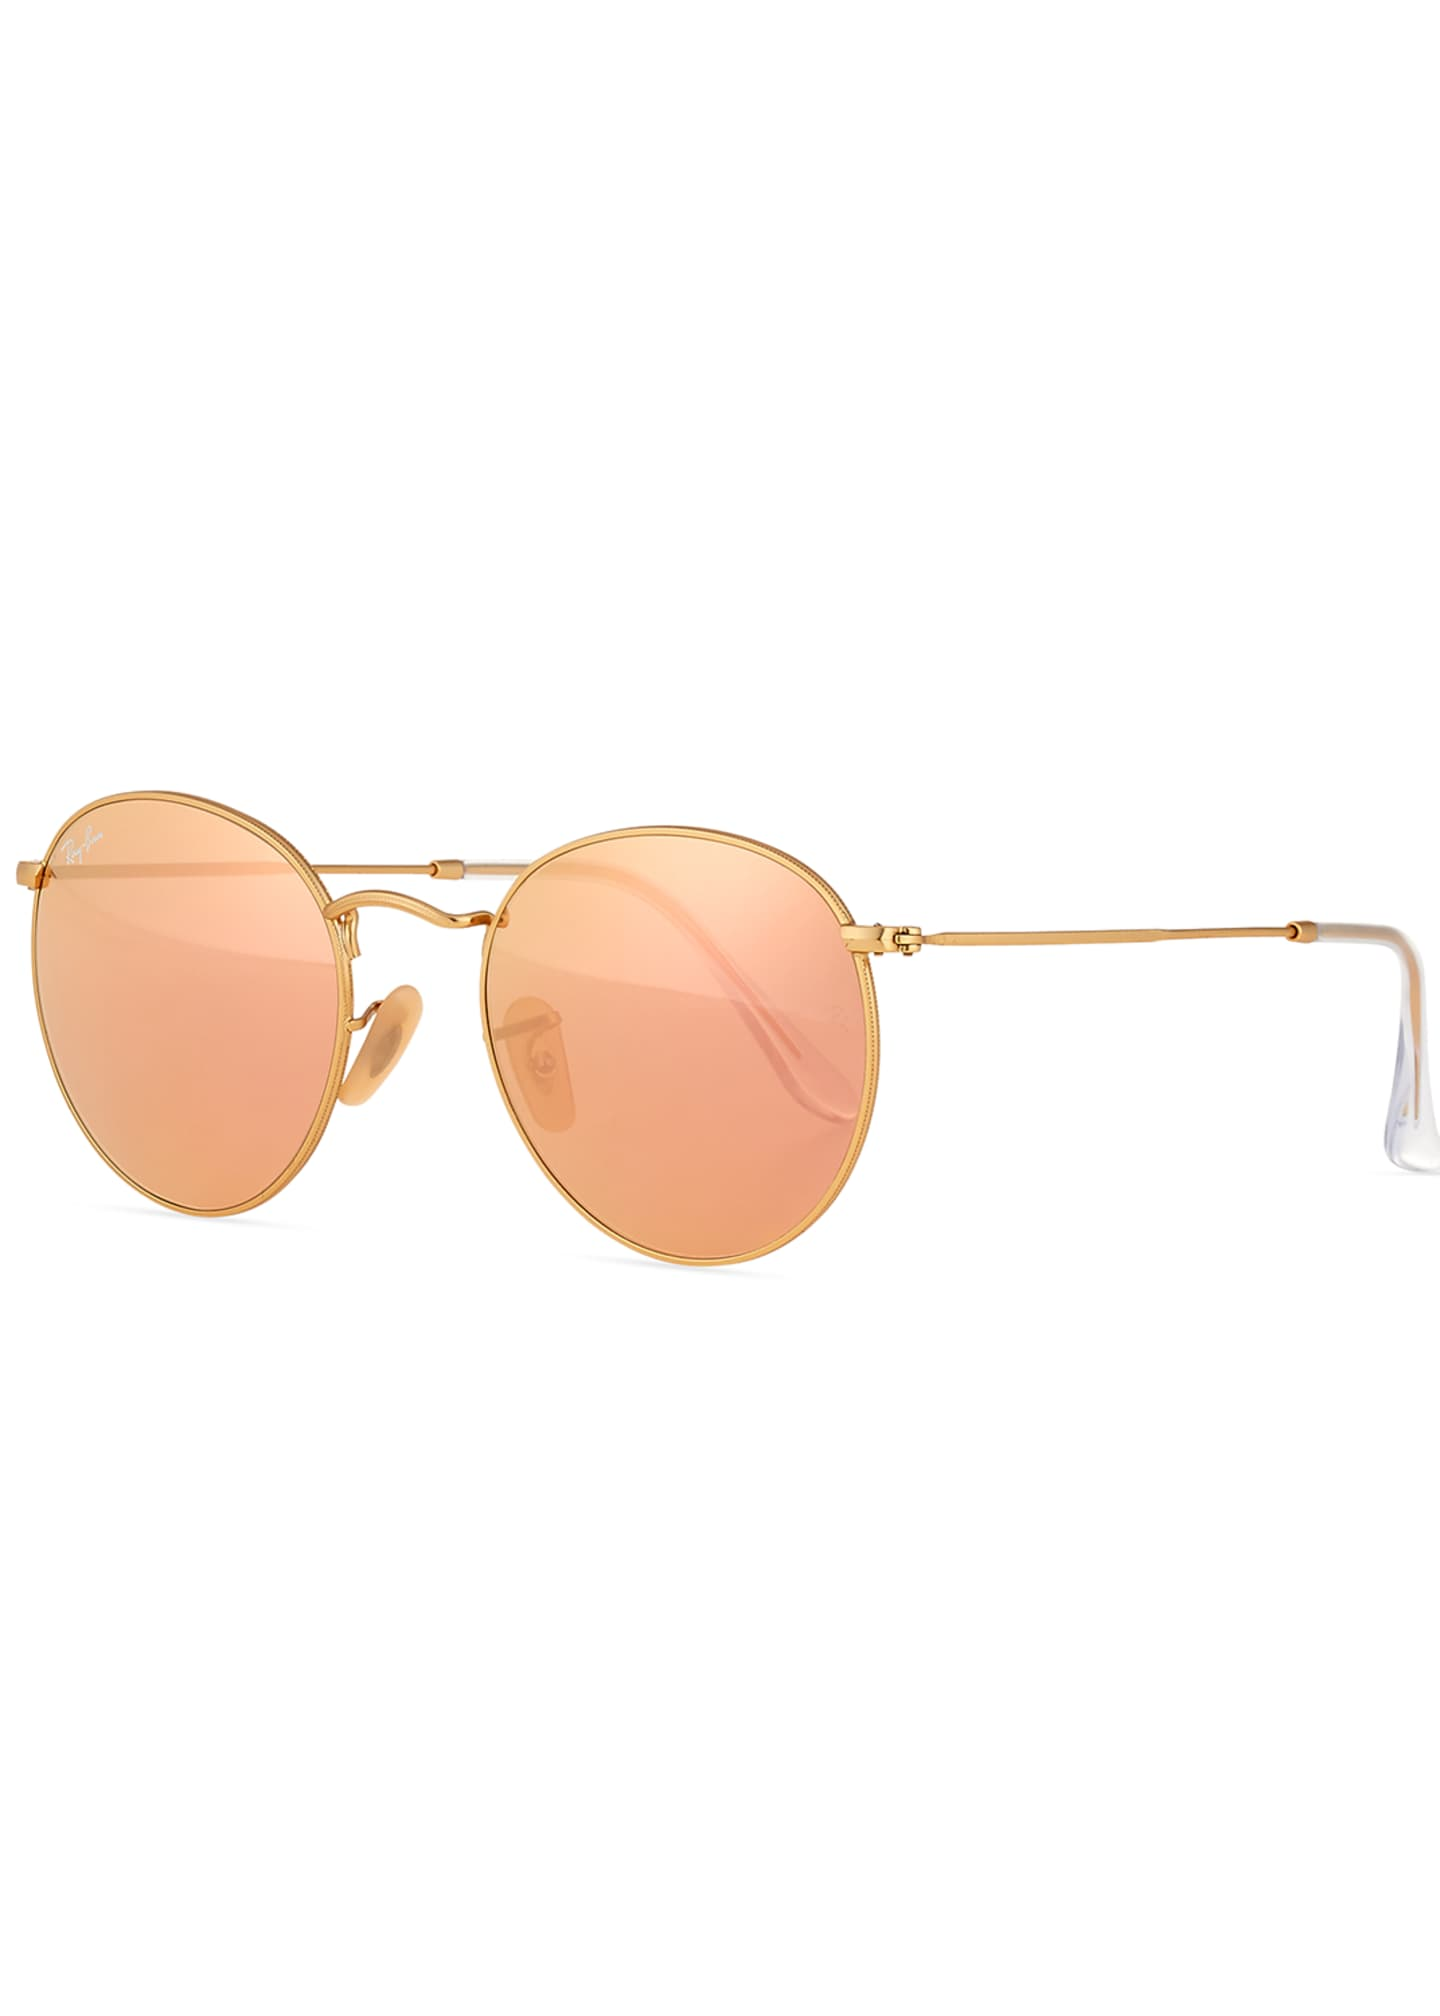 Ray-Ban Mirrored Round Metal Sunglasses, Gold/Pink